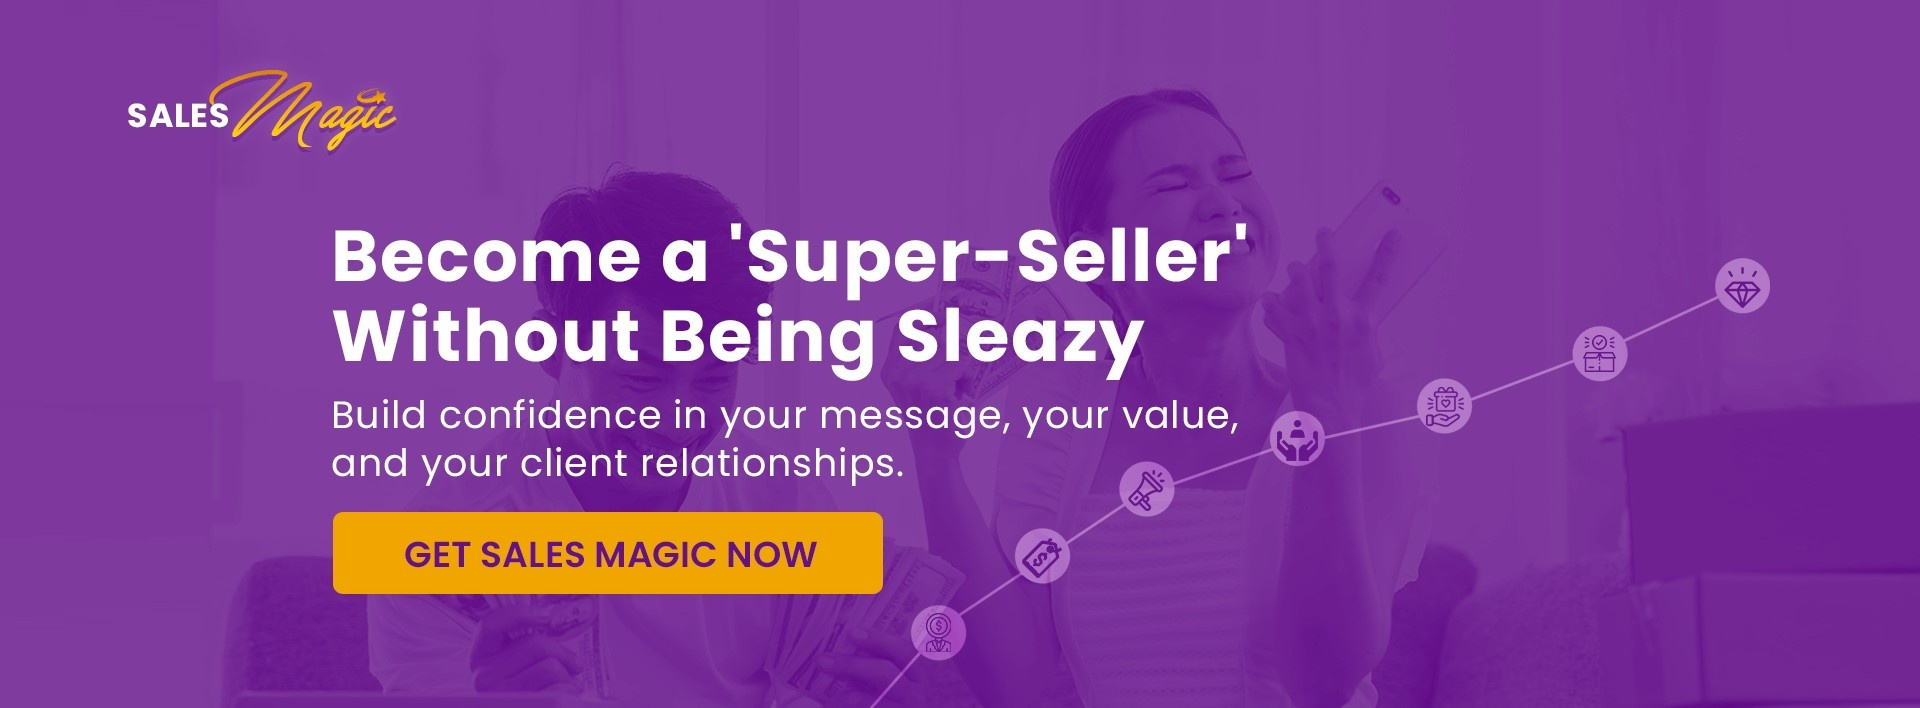 Sales Magic: Become a 'Super-Seller' Without Being Sleazy